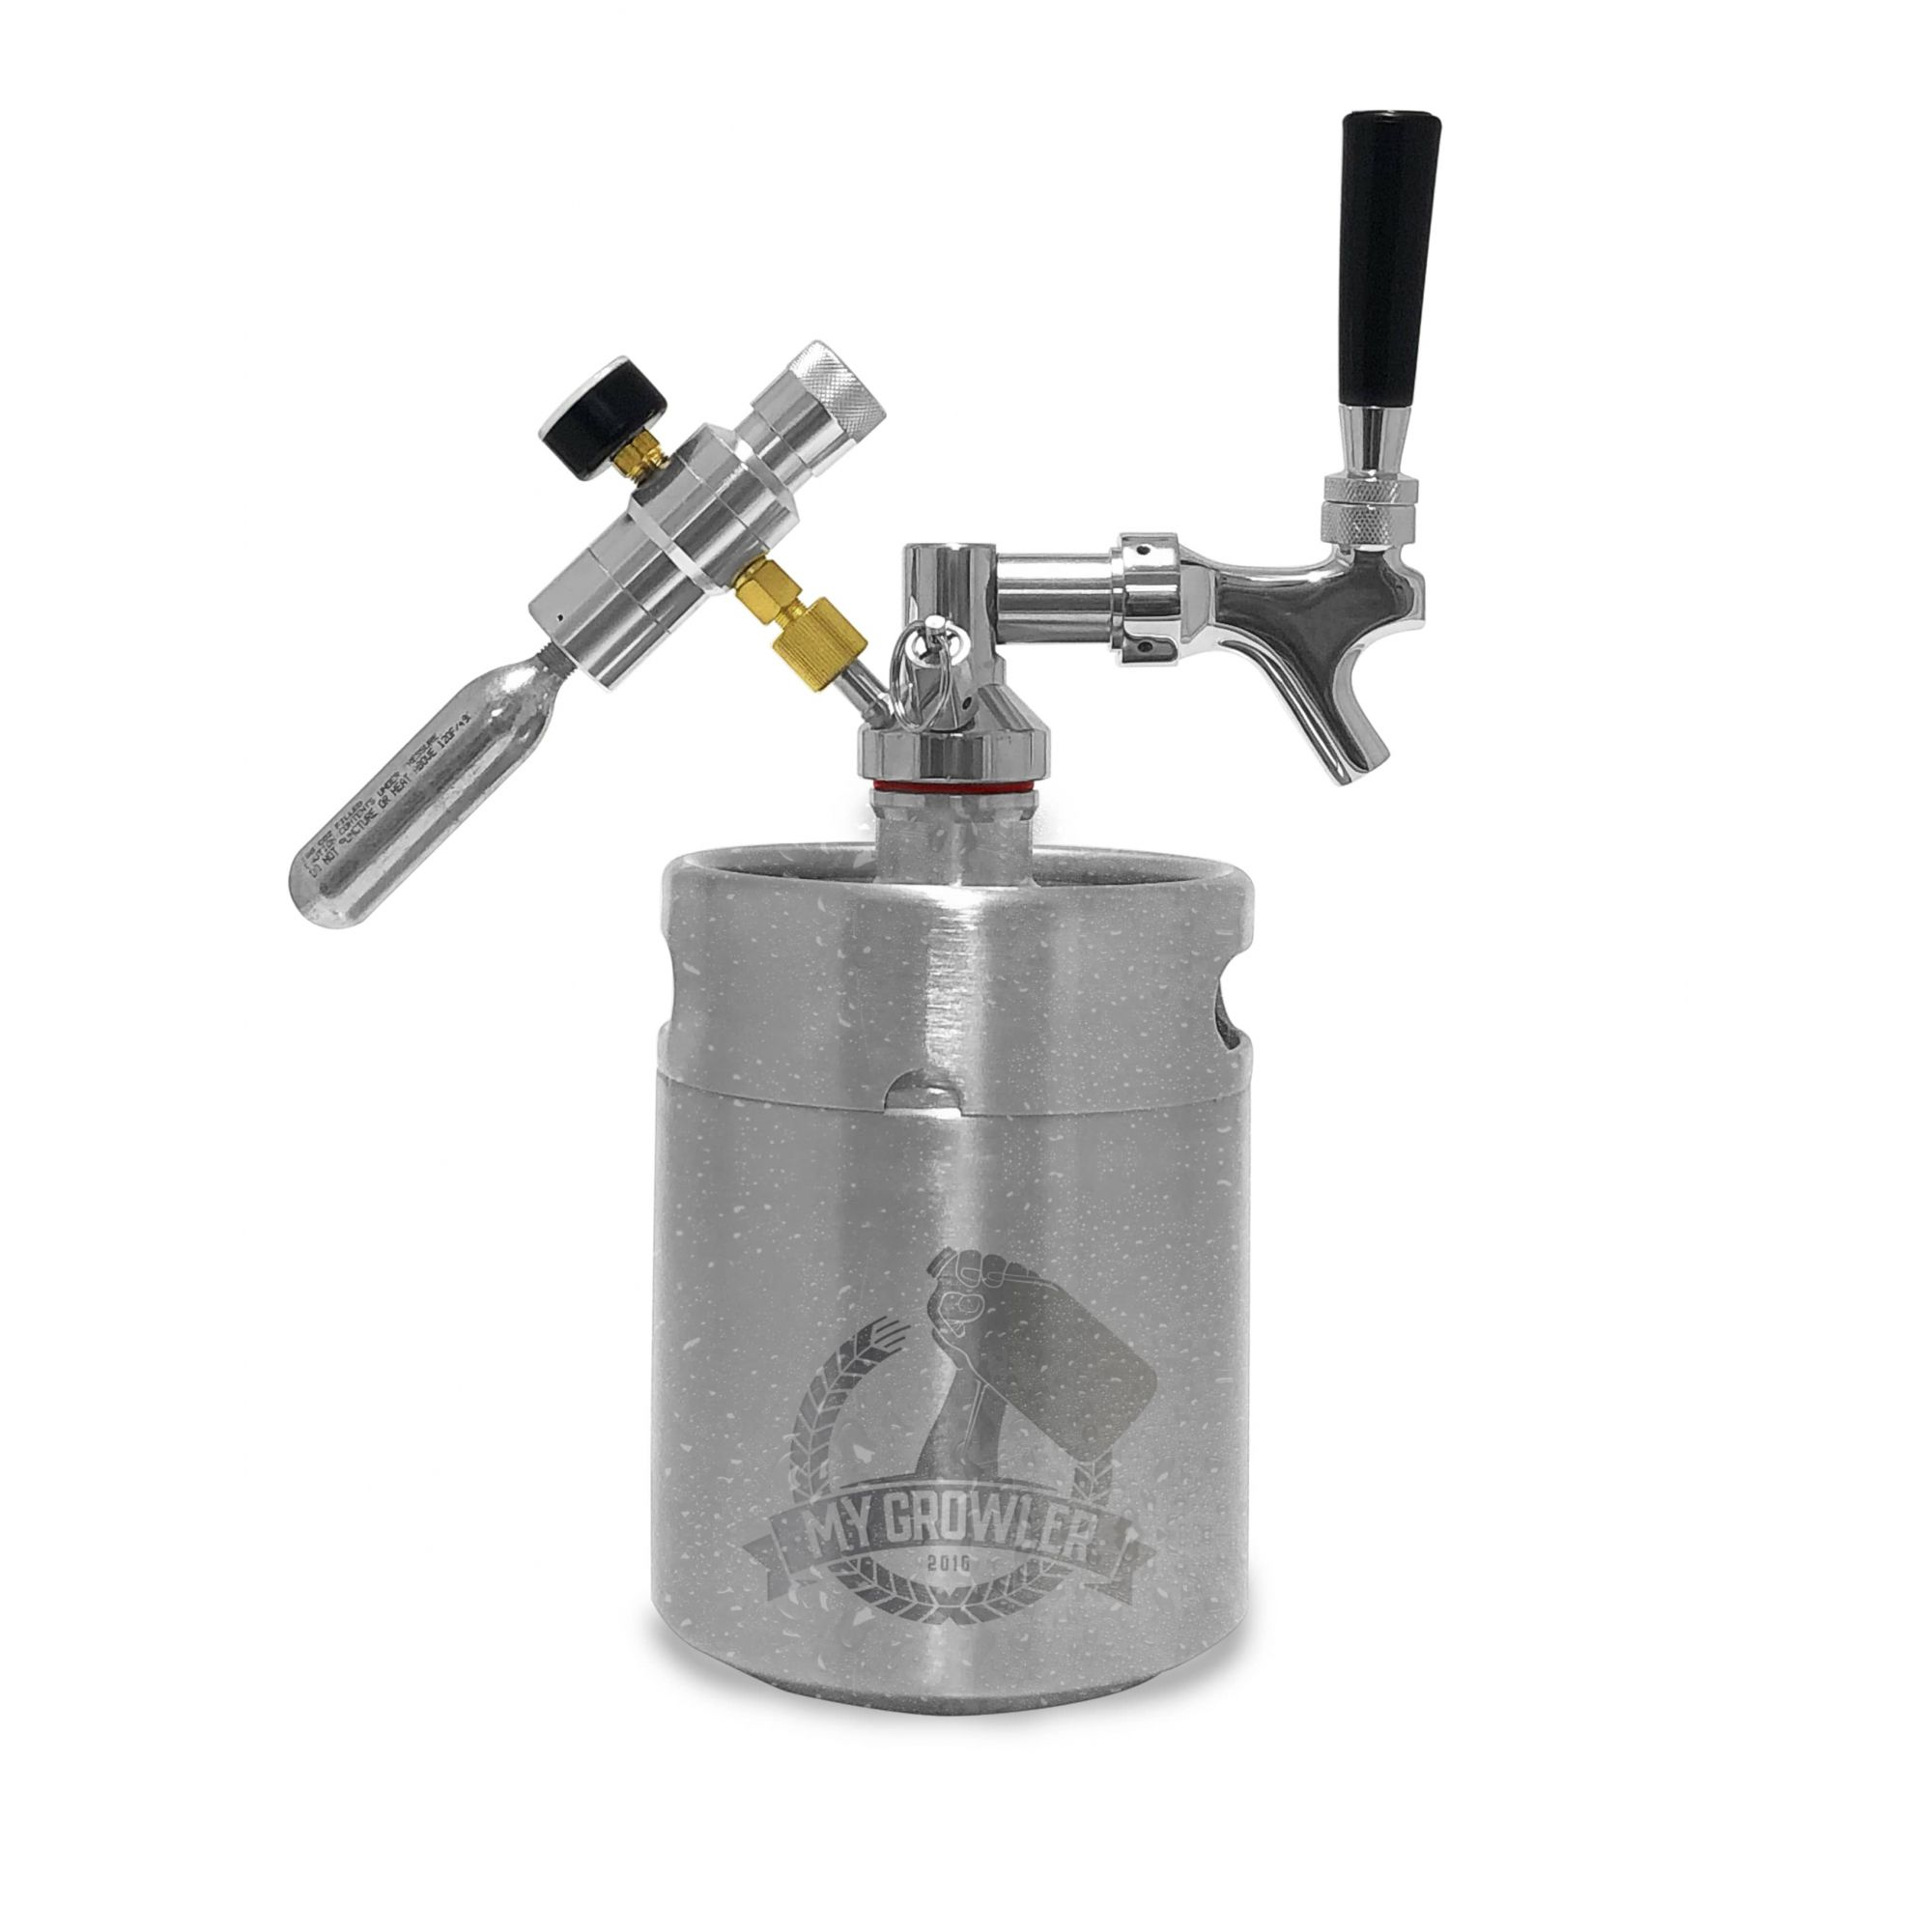 Kit My Keg Growler Inox 2L com Americana Standard